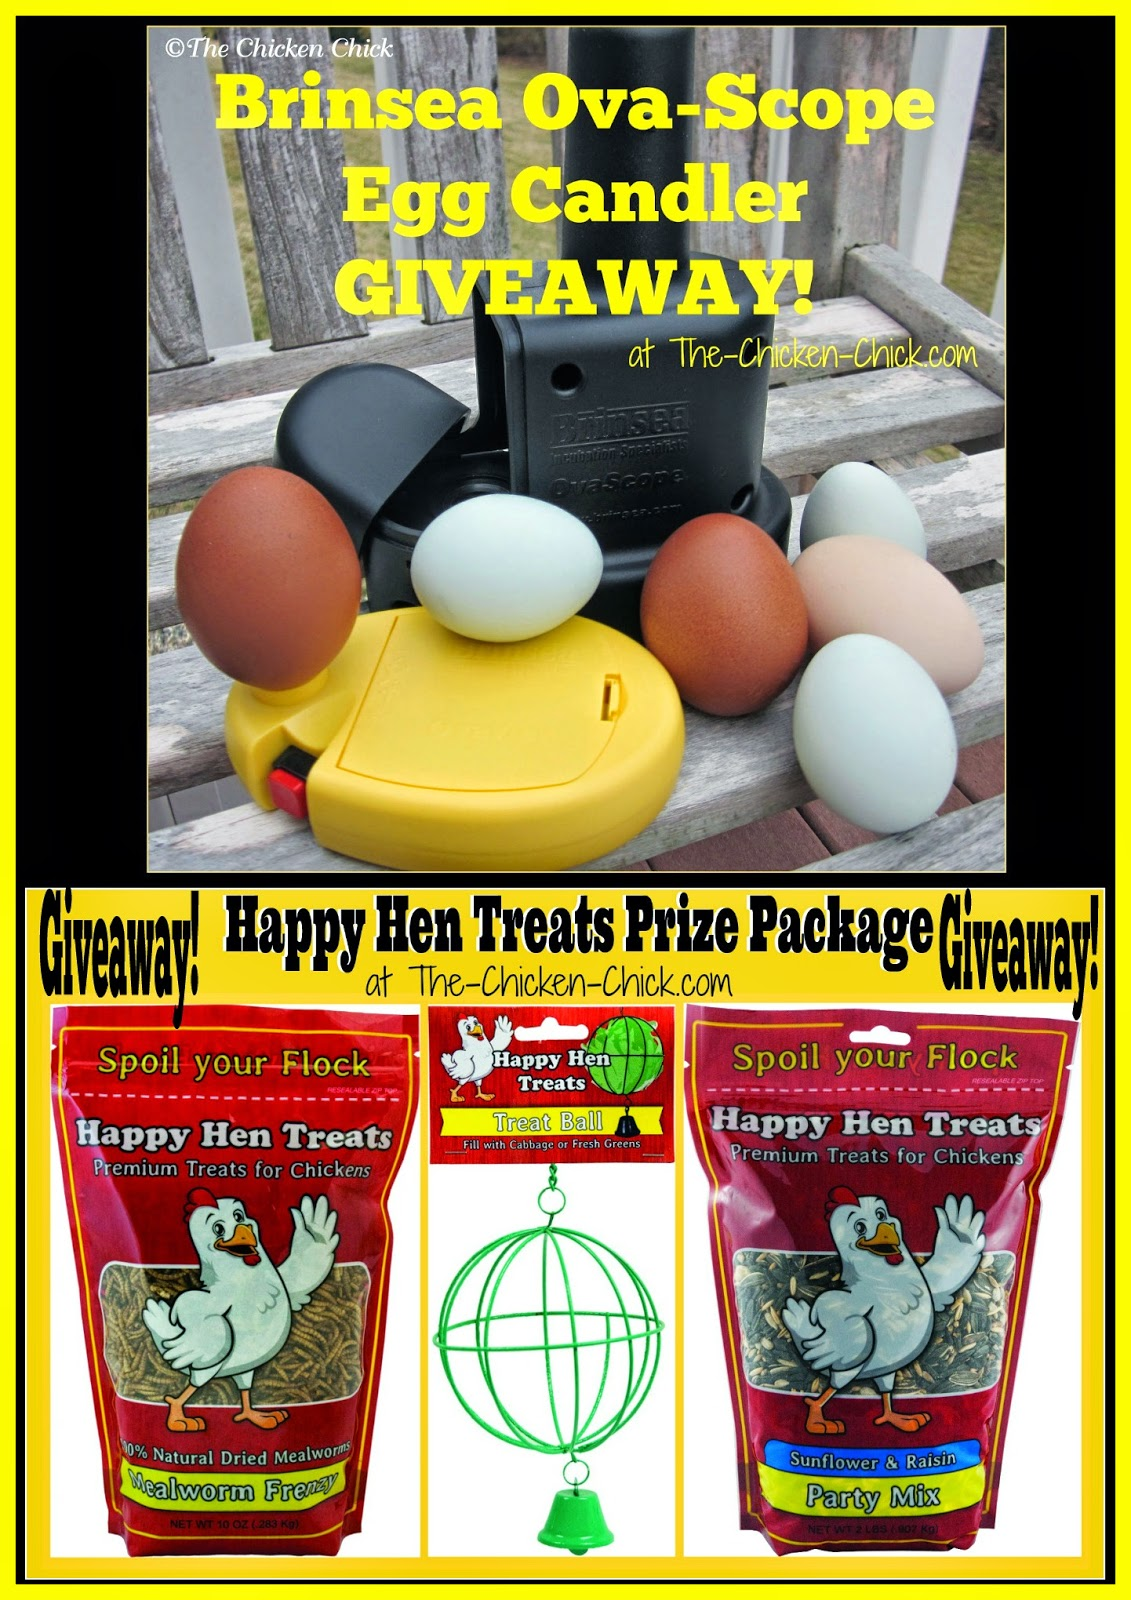 Brinsea OvaScope Giveaway & Happy Hen Treats Giveaway